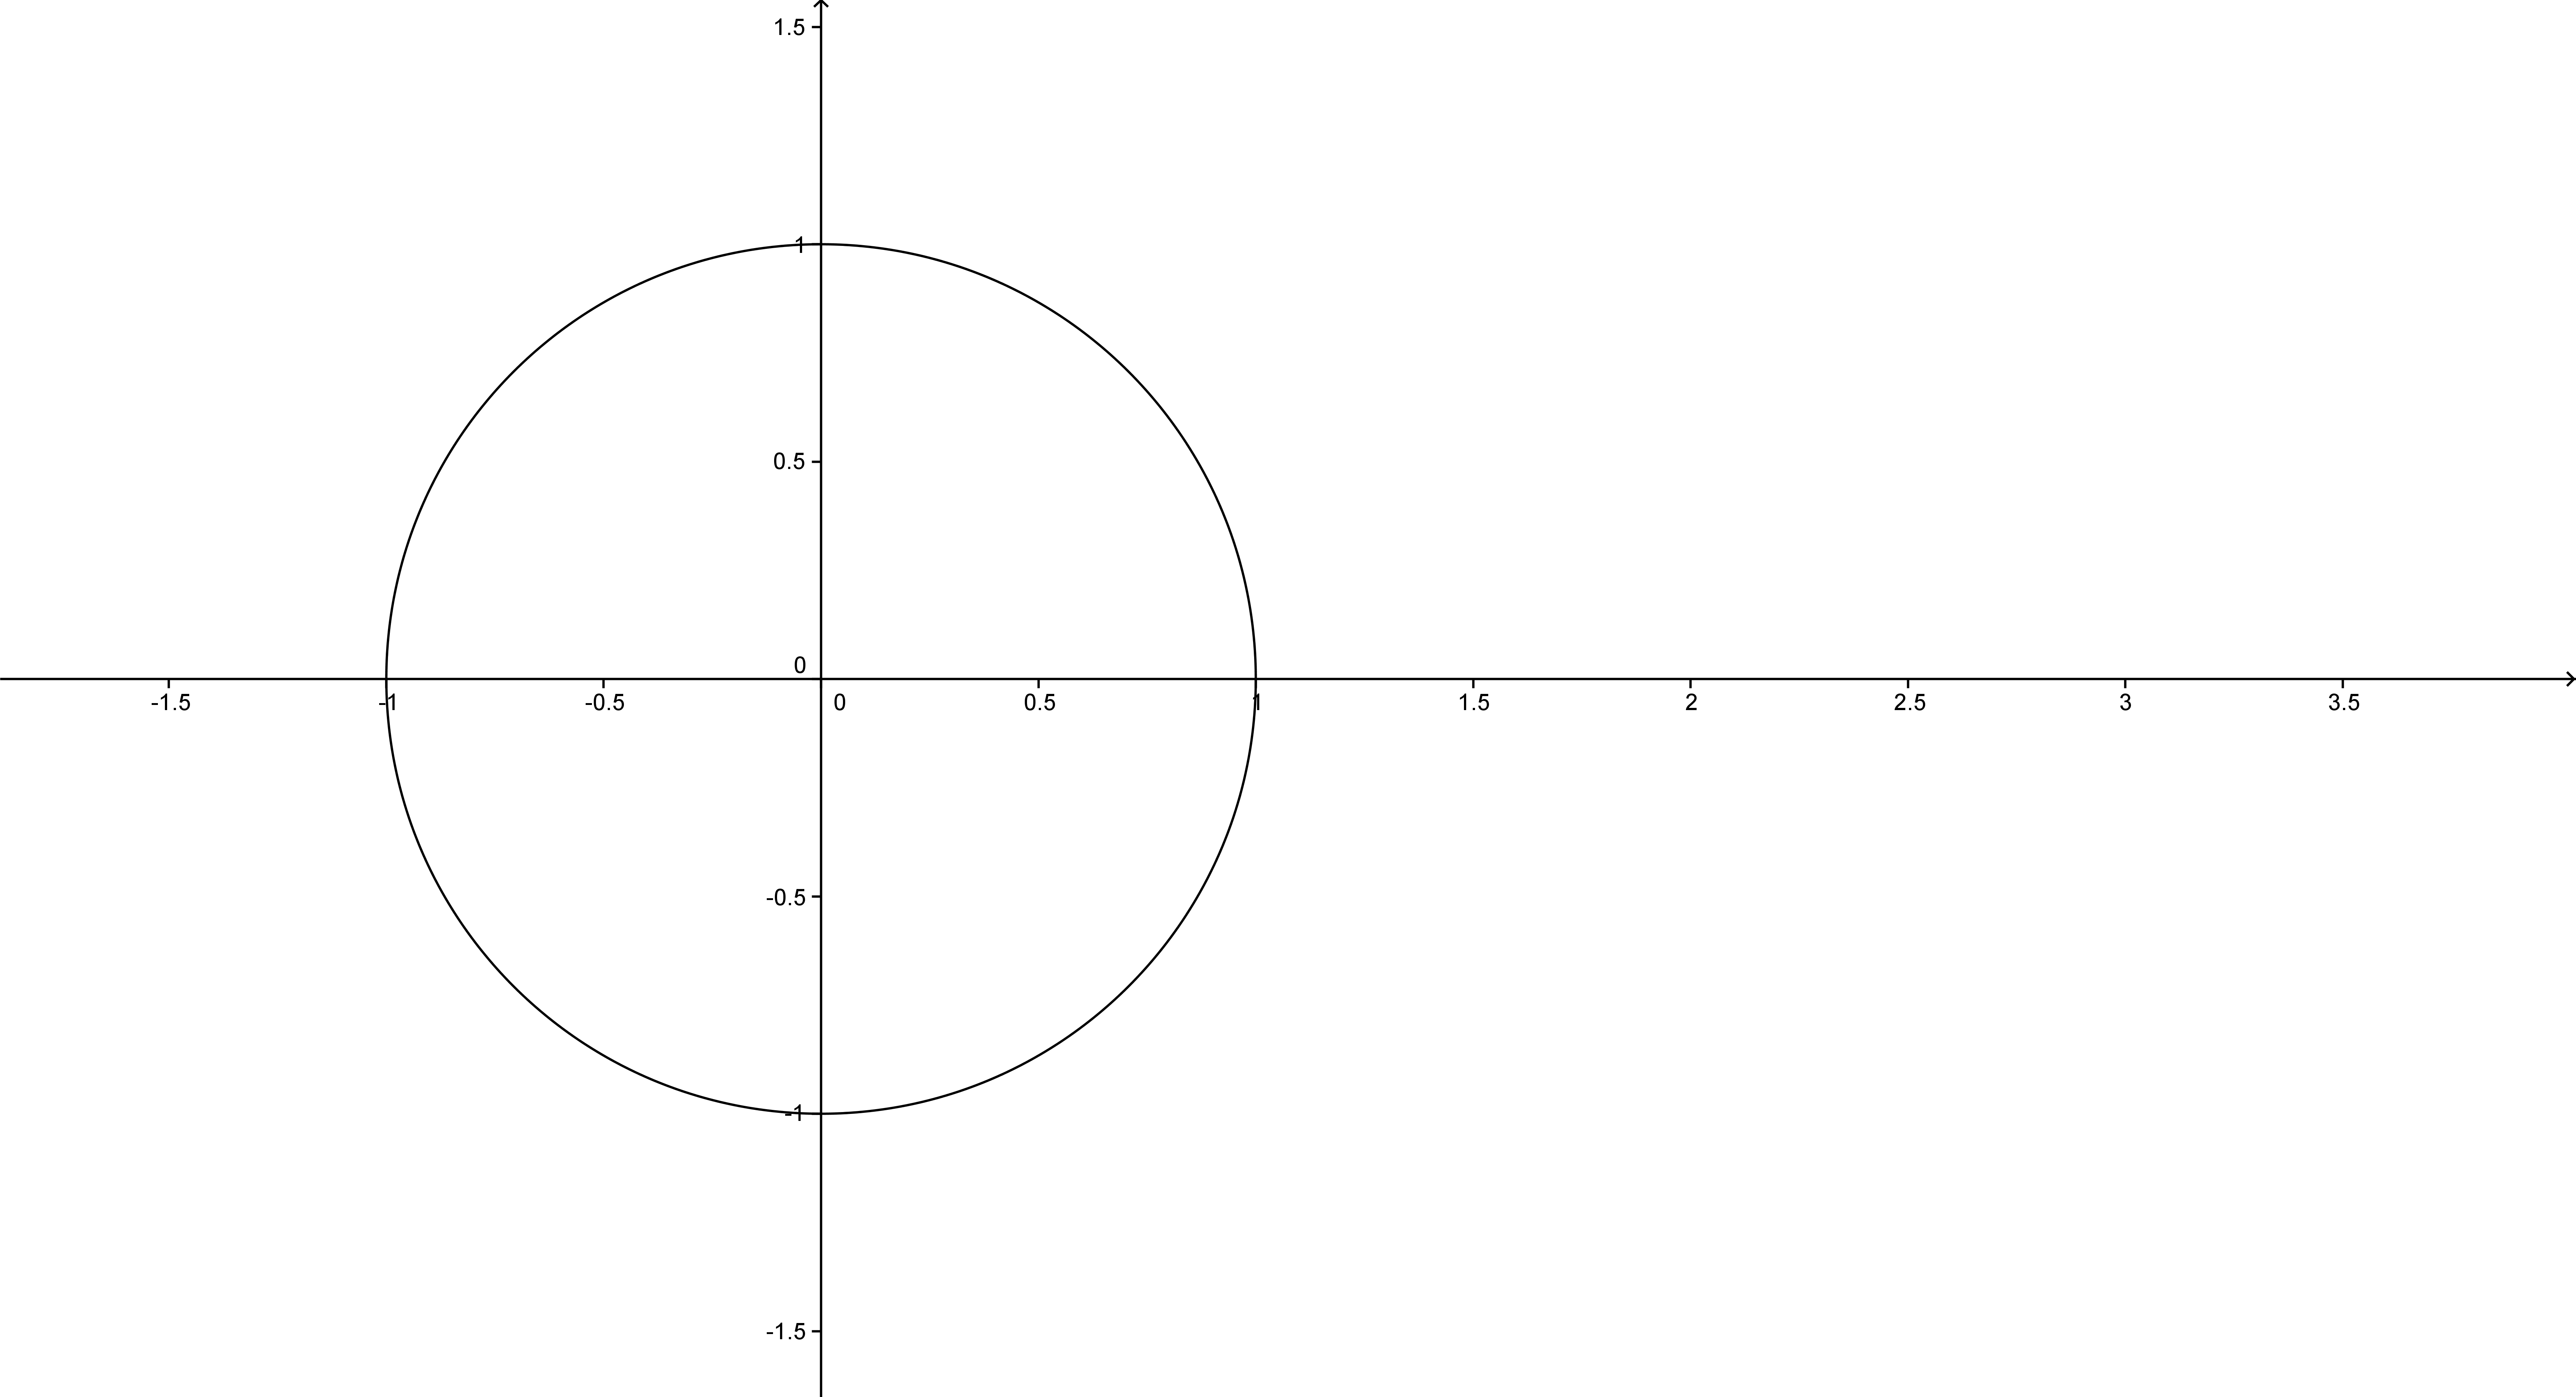 Draw a curve or circle shape